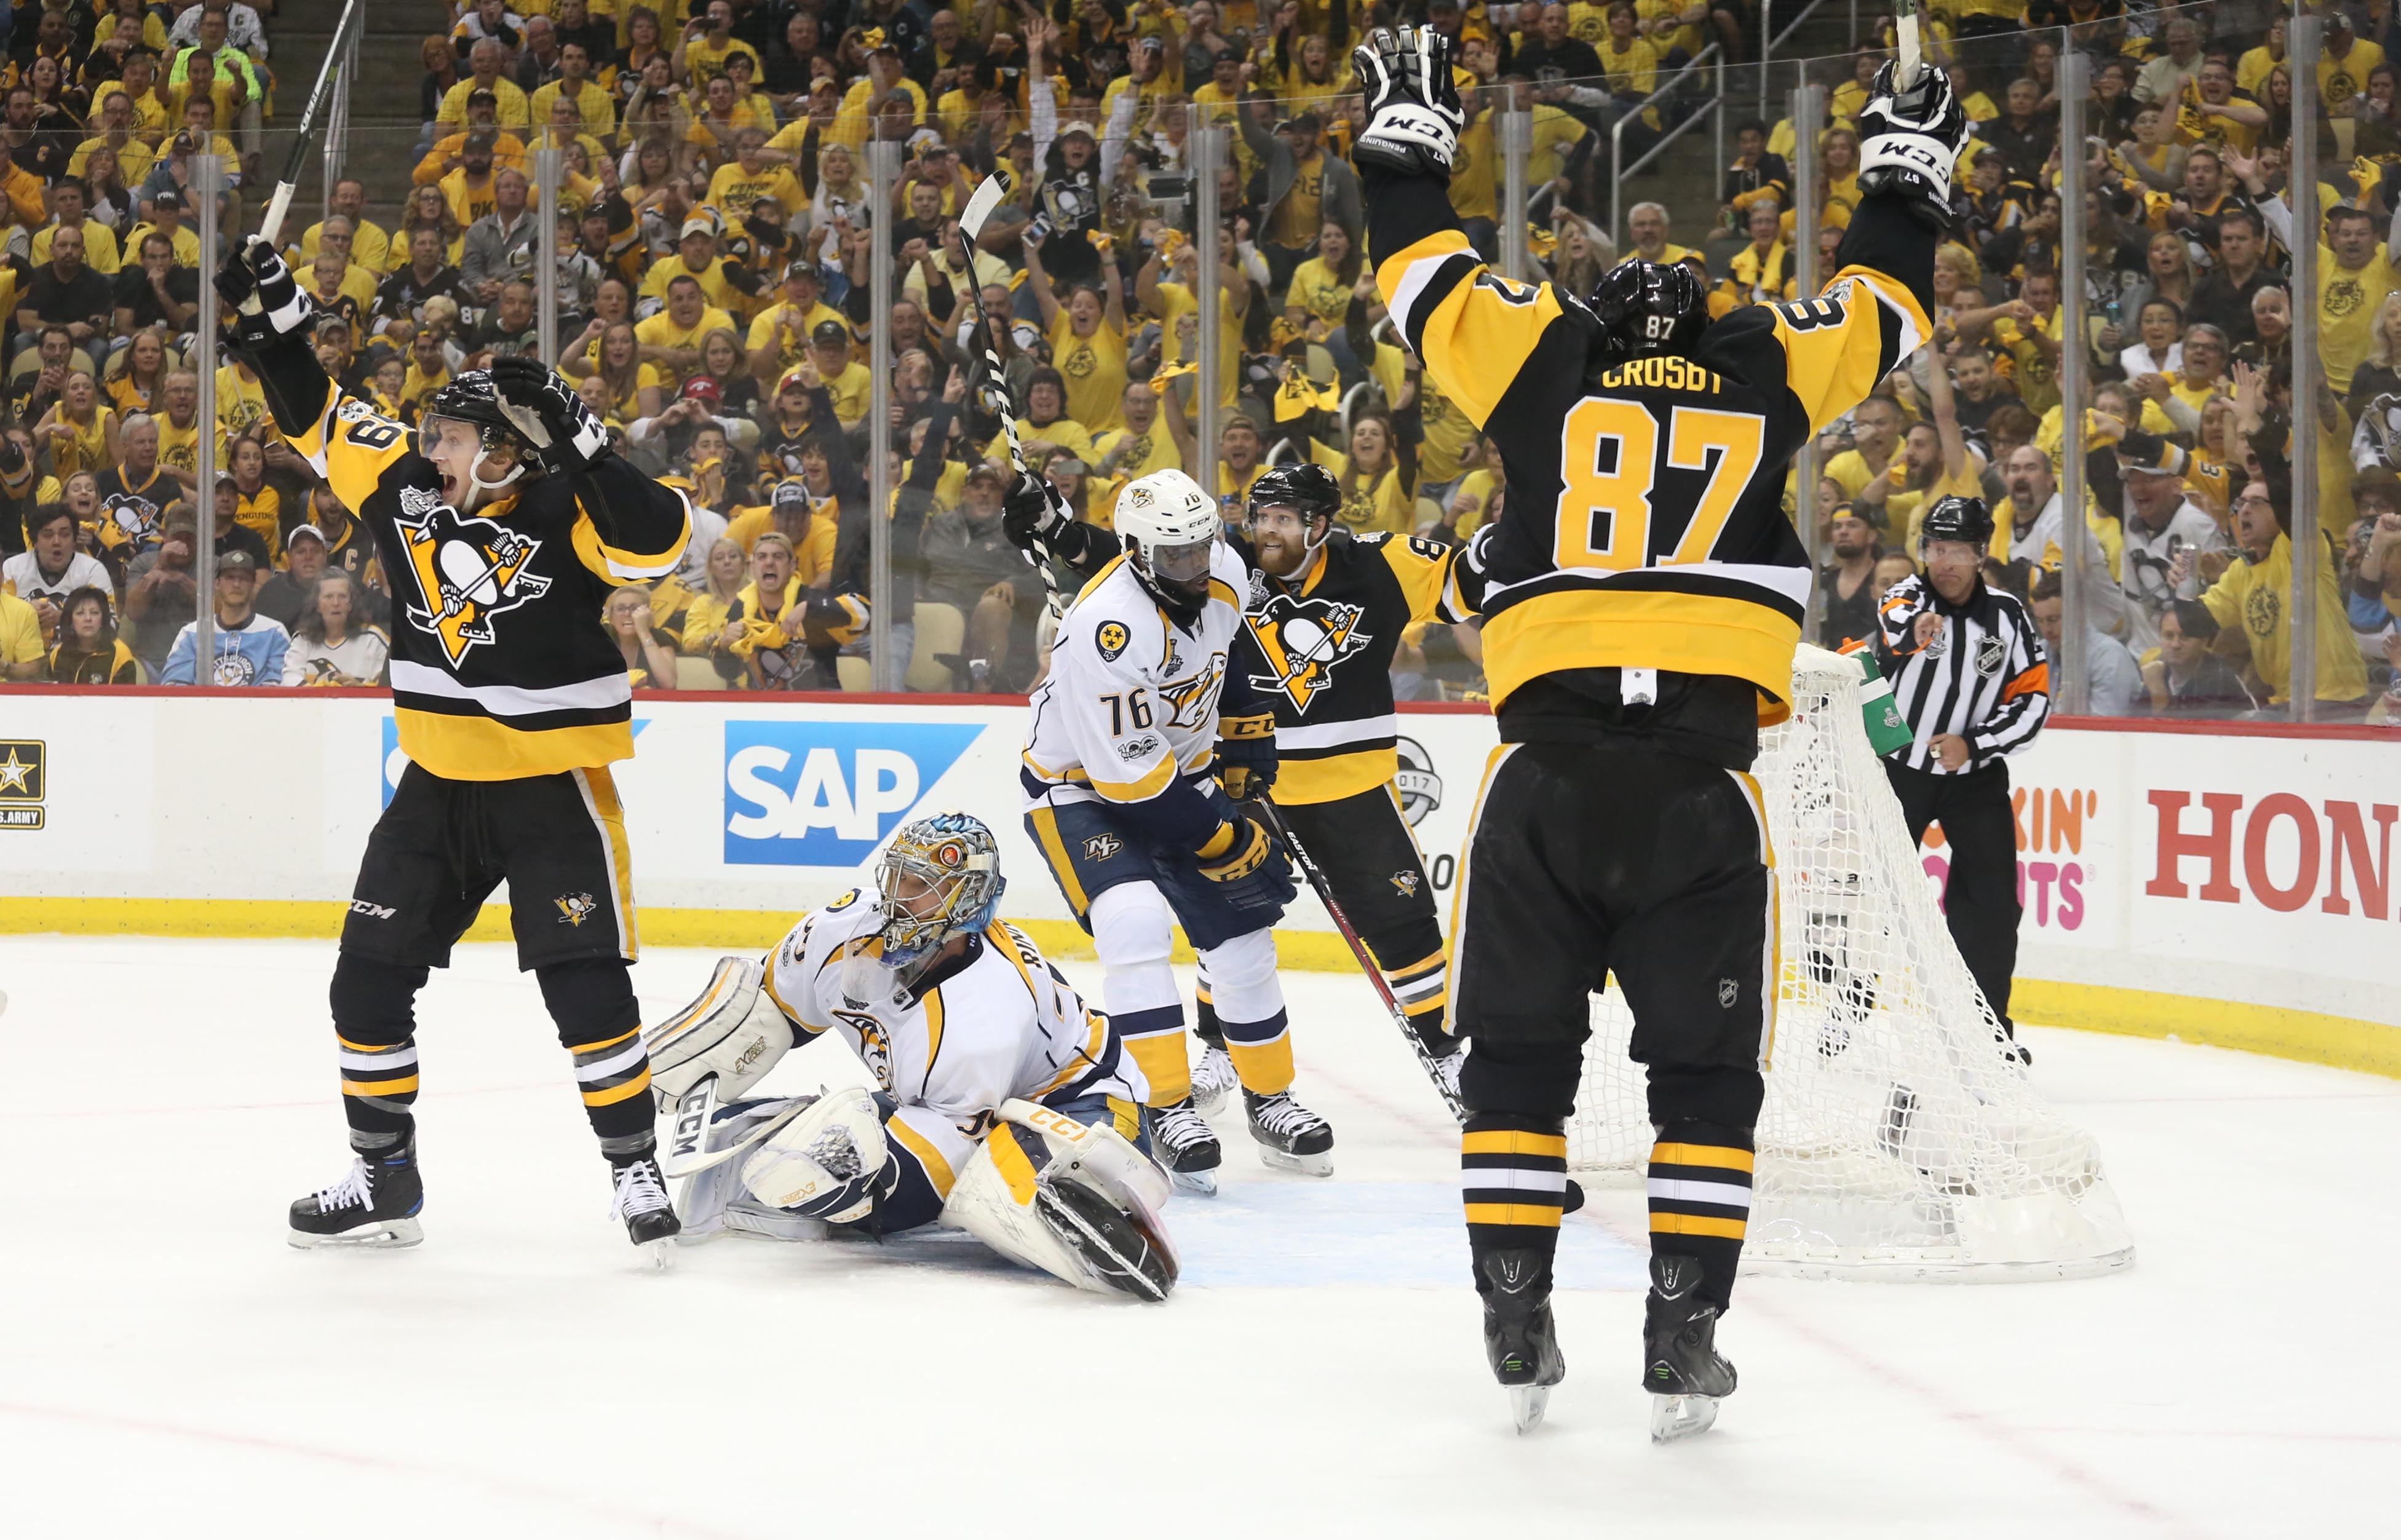 Stanley cup finals dates in Perth